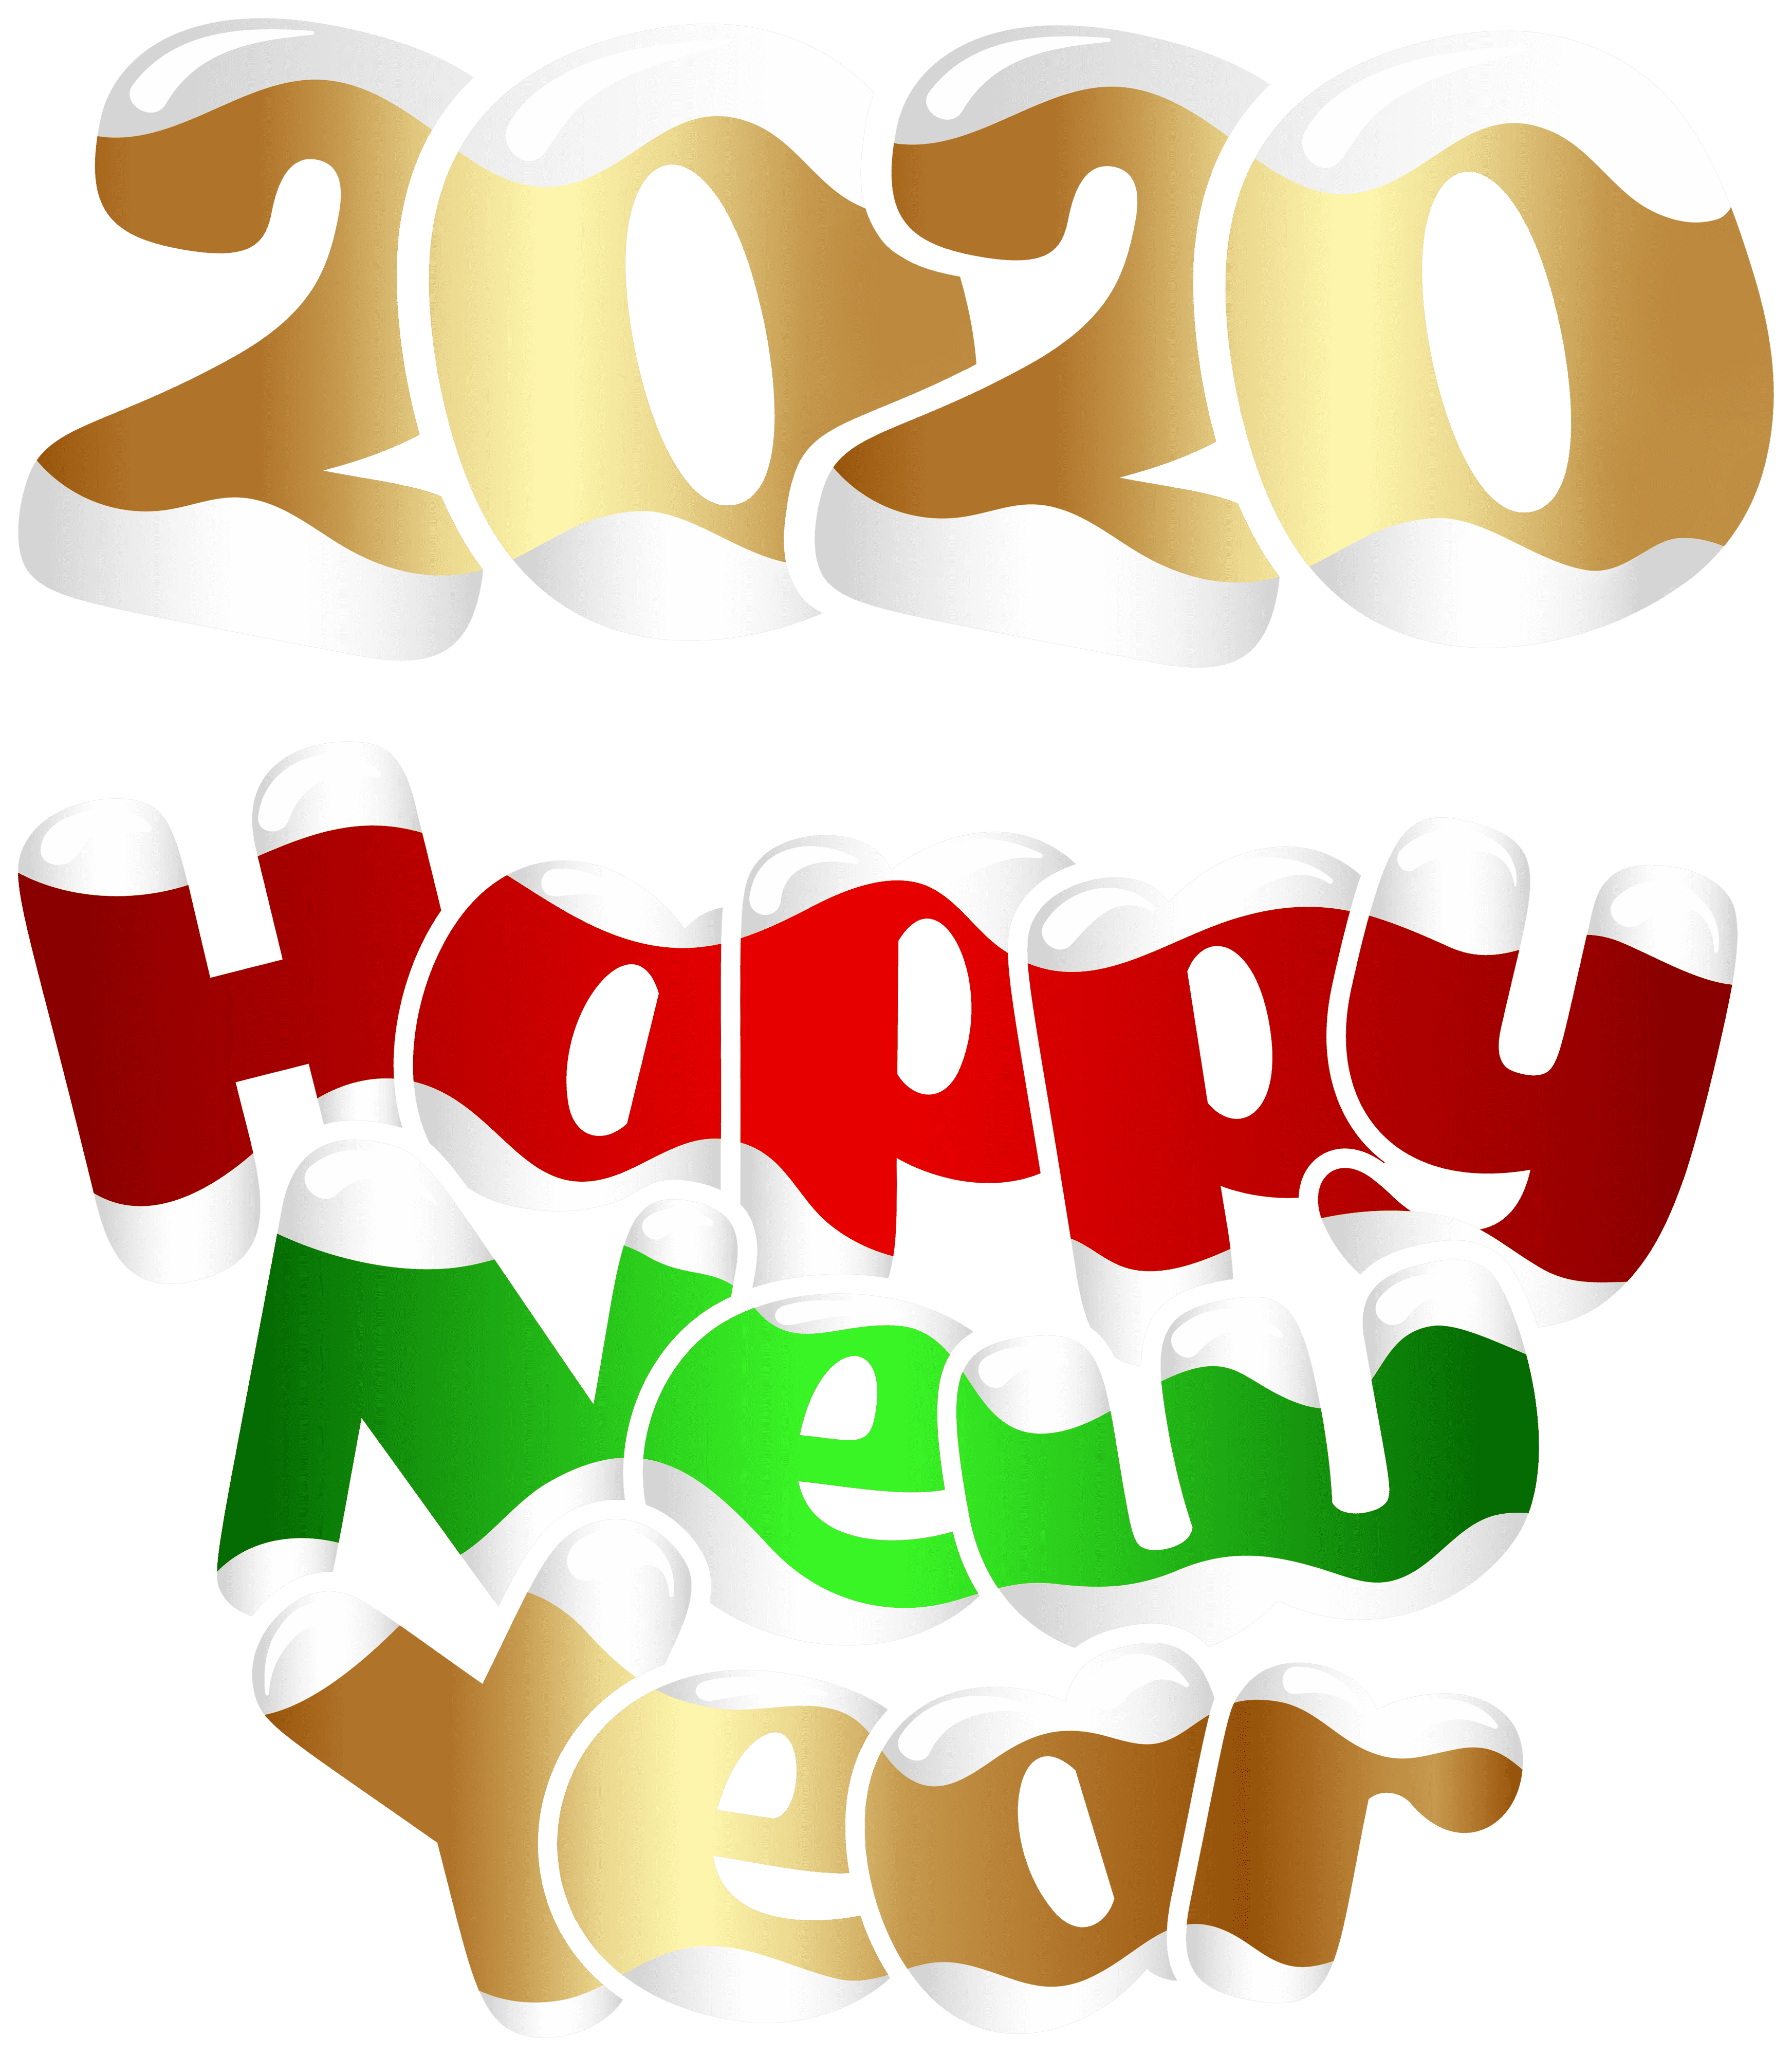 2020 Happy New Year Png Clip Art Image